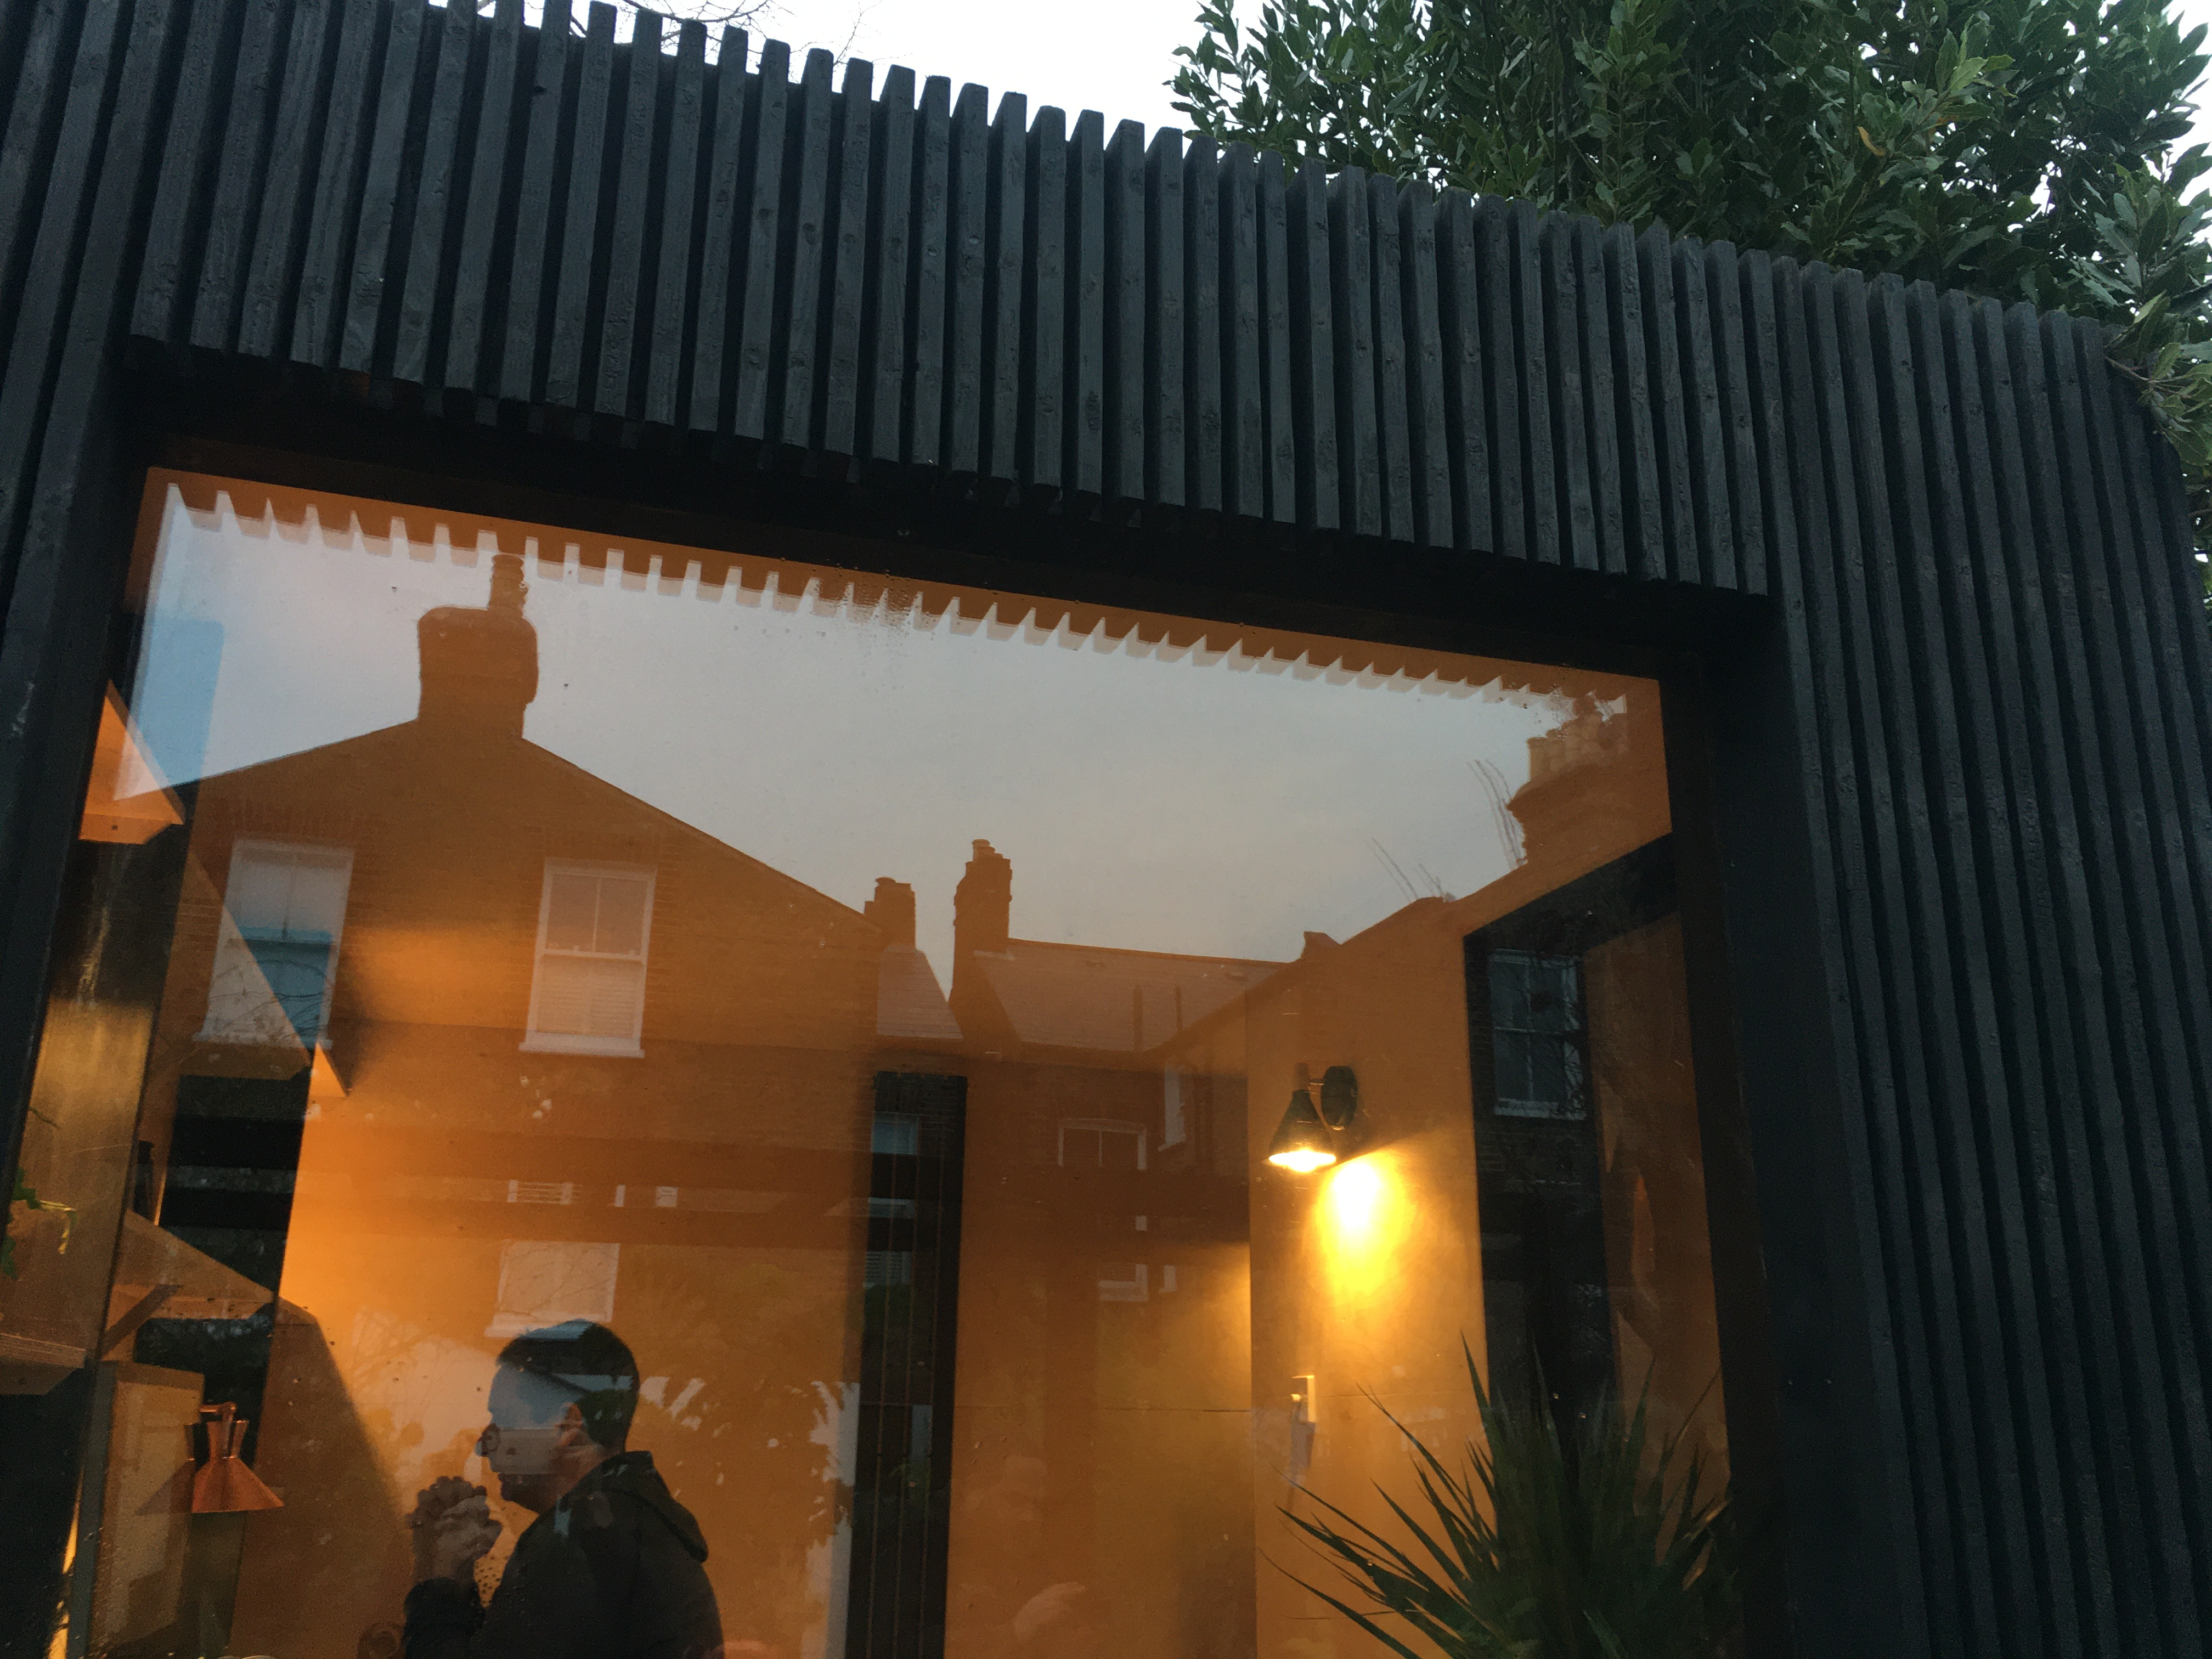 Exterior clad in charred larch battens